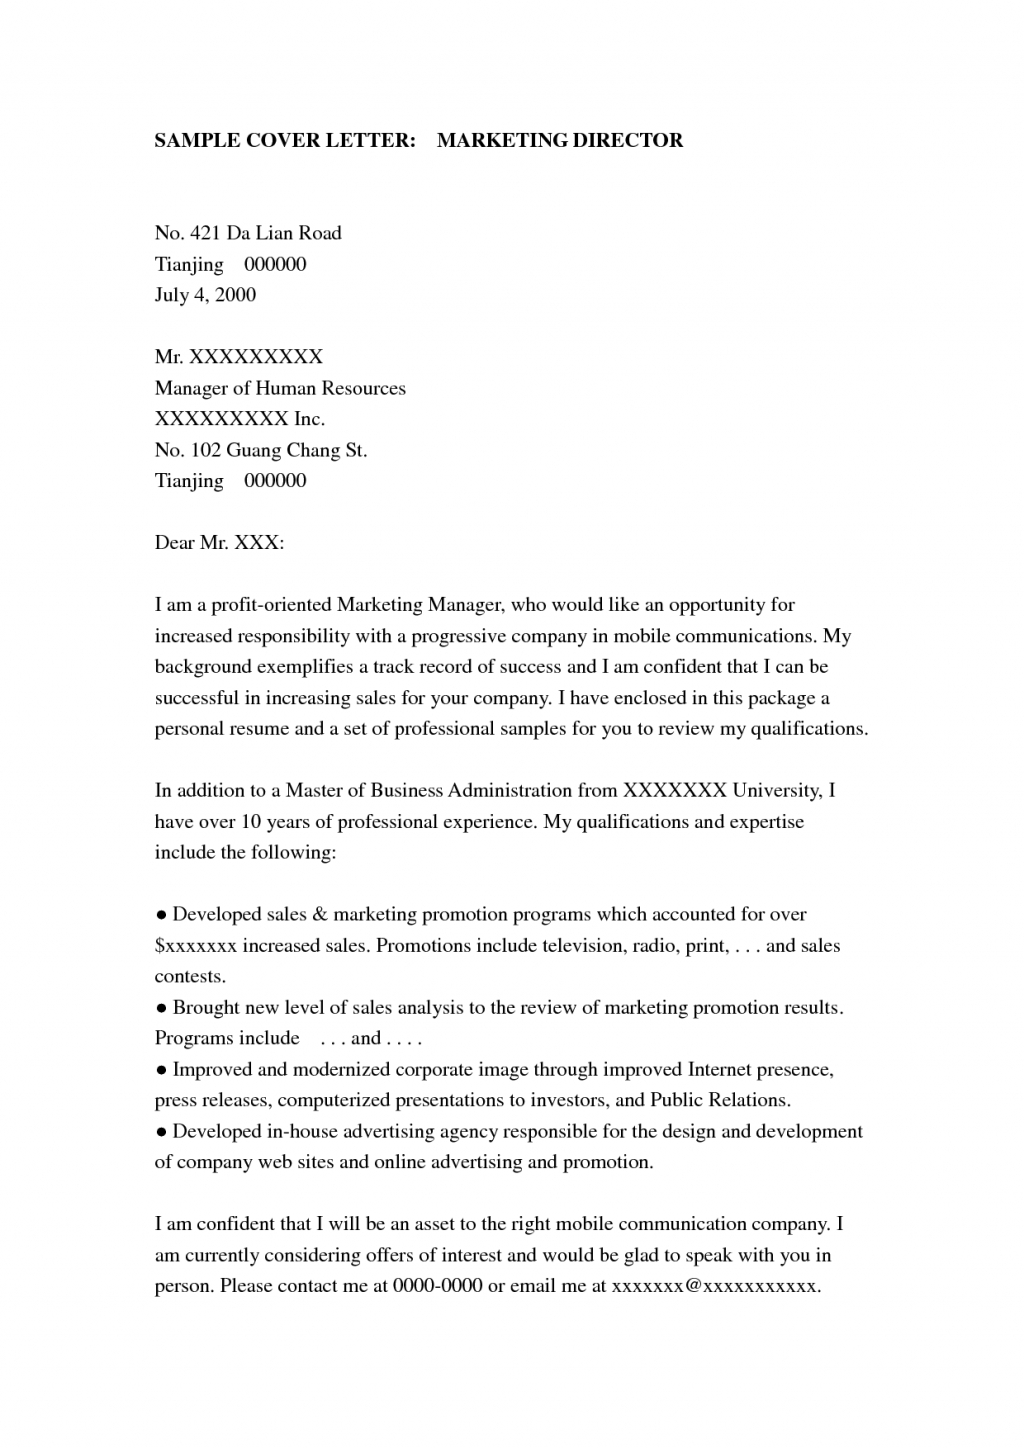 Advertising Agency Of Record Letter Template Samples Letter Template Collection